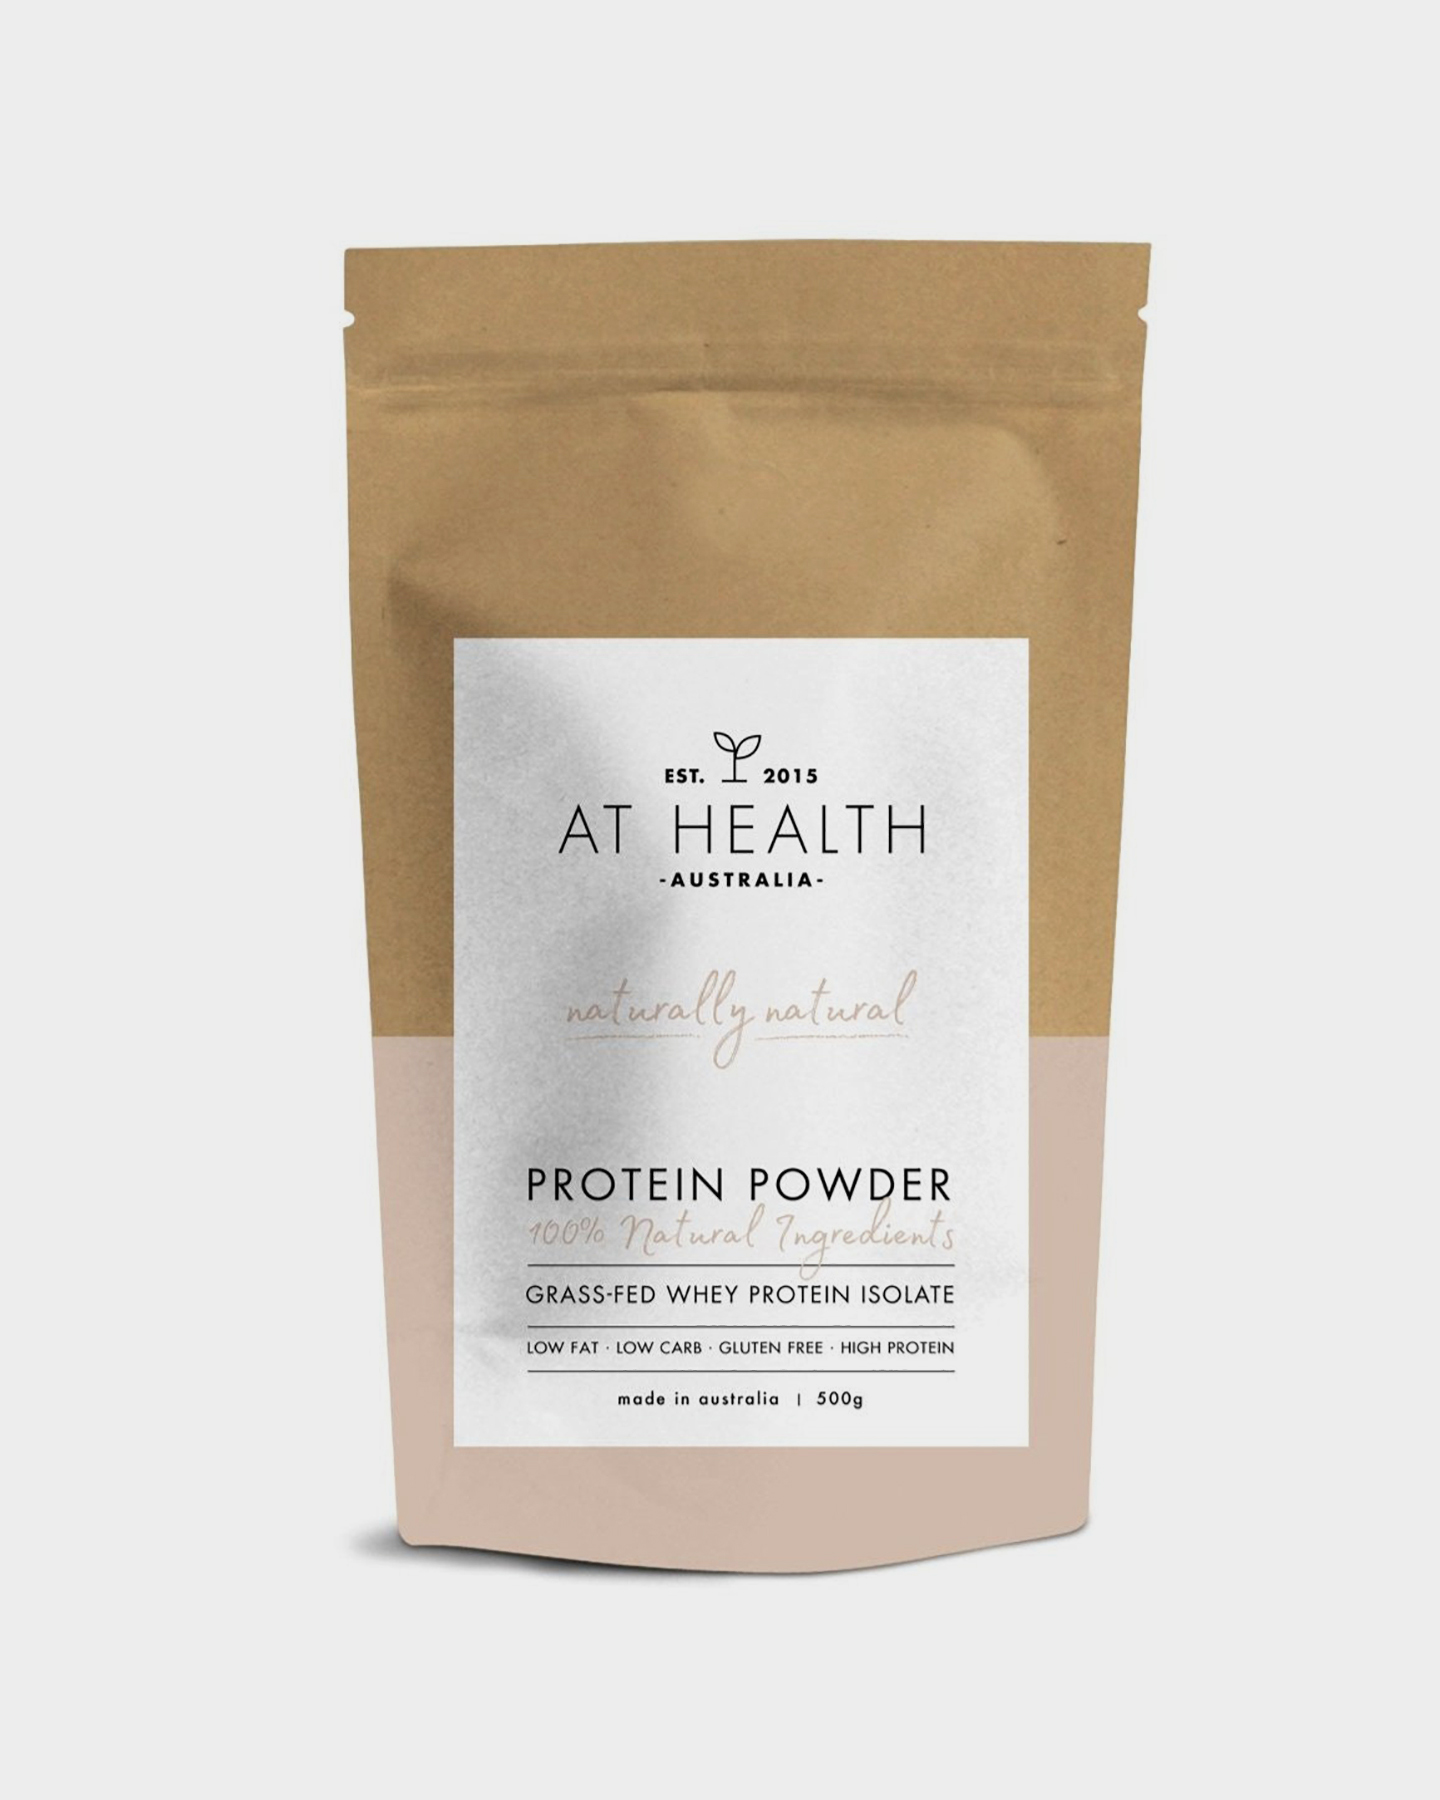 At Health Naturally Natural Grass-Fed Whey Protein Isolate Natural